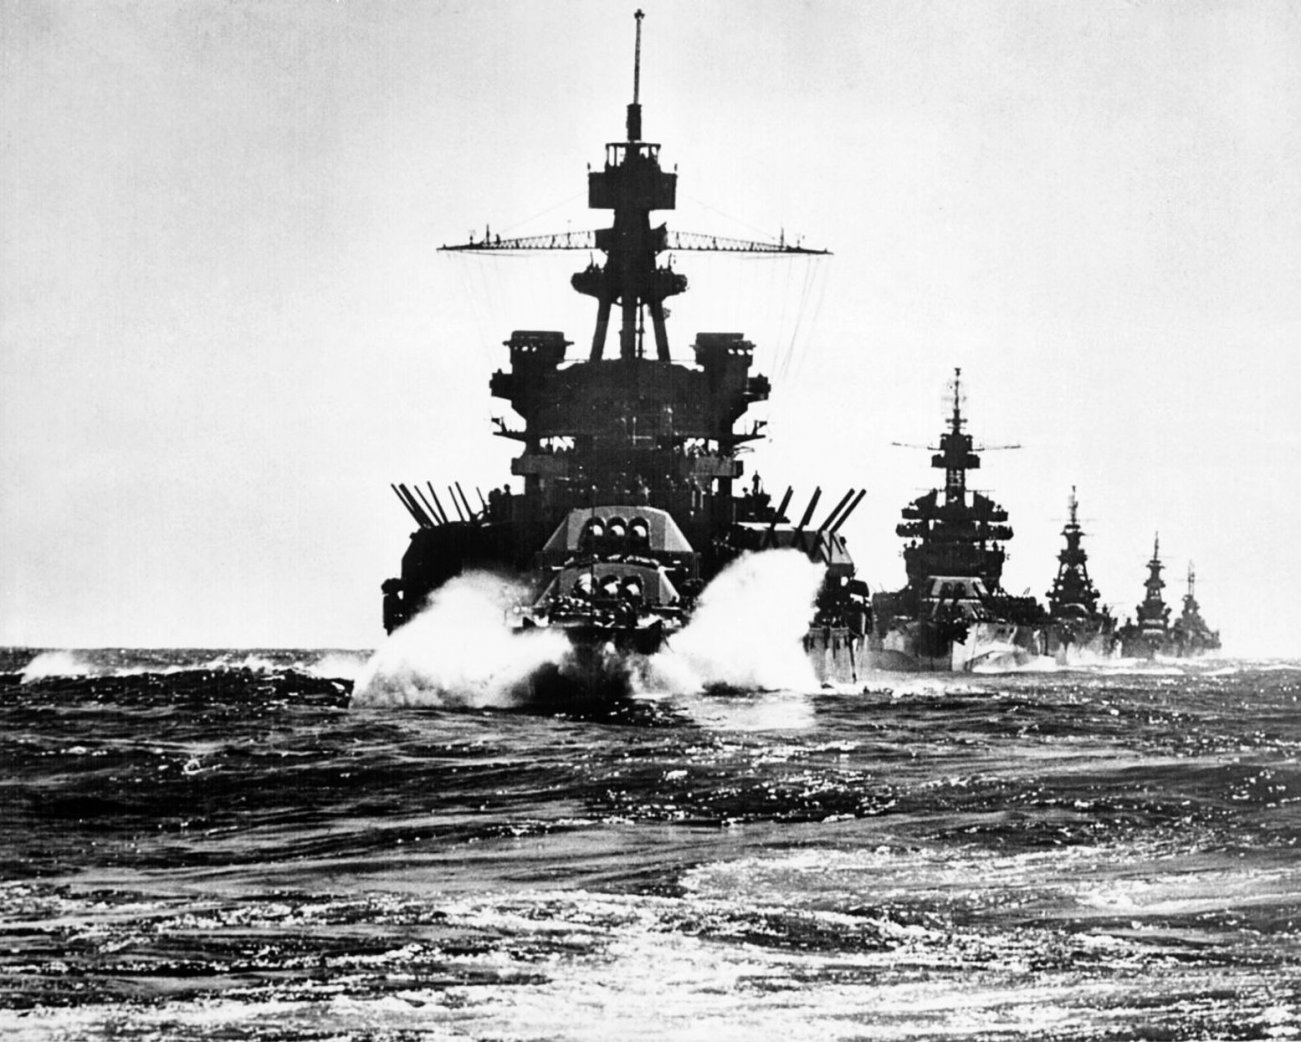 Battleships, Submarines and Aircraft Carriers Fight: Battle of Leyte Gulf Was the Ultimate Naval Deathmatch